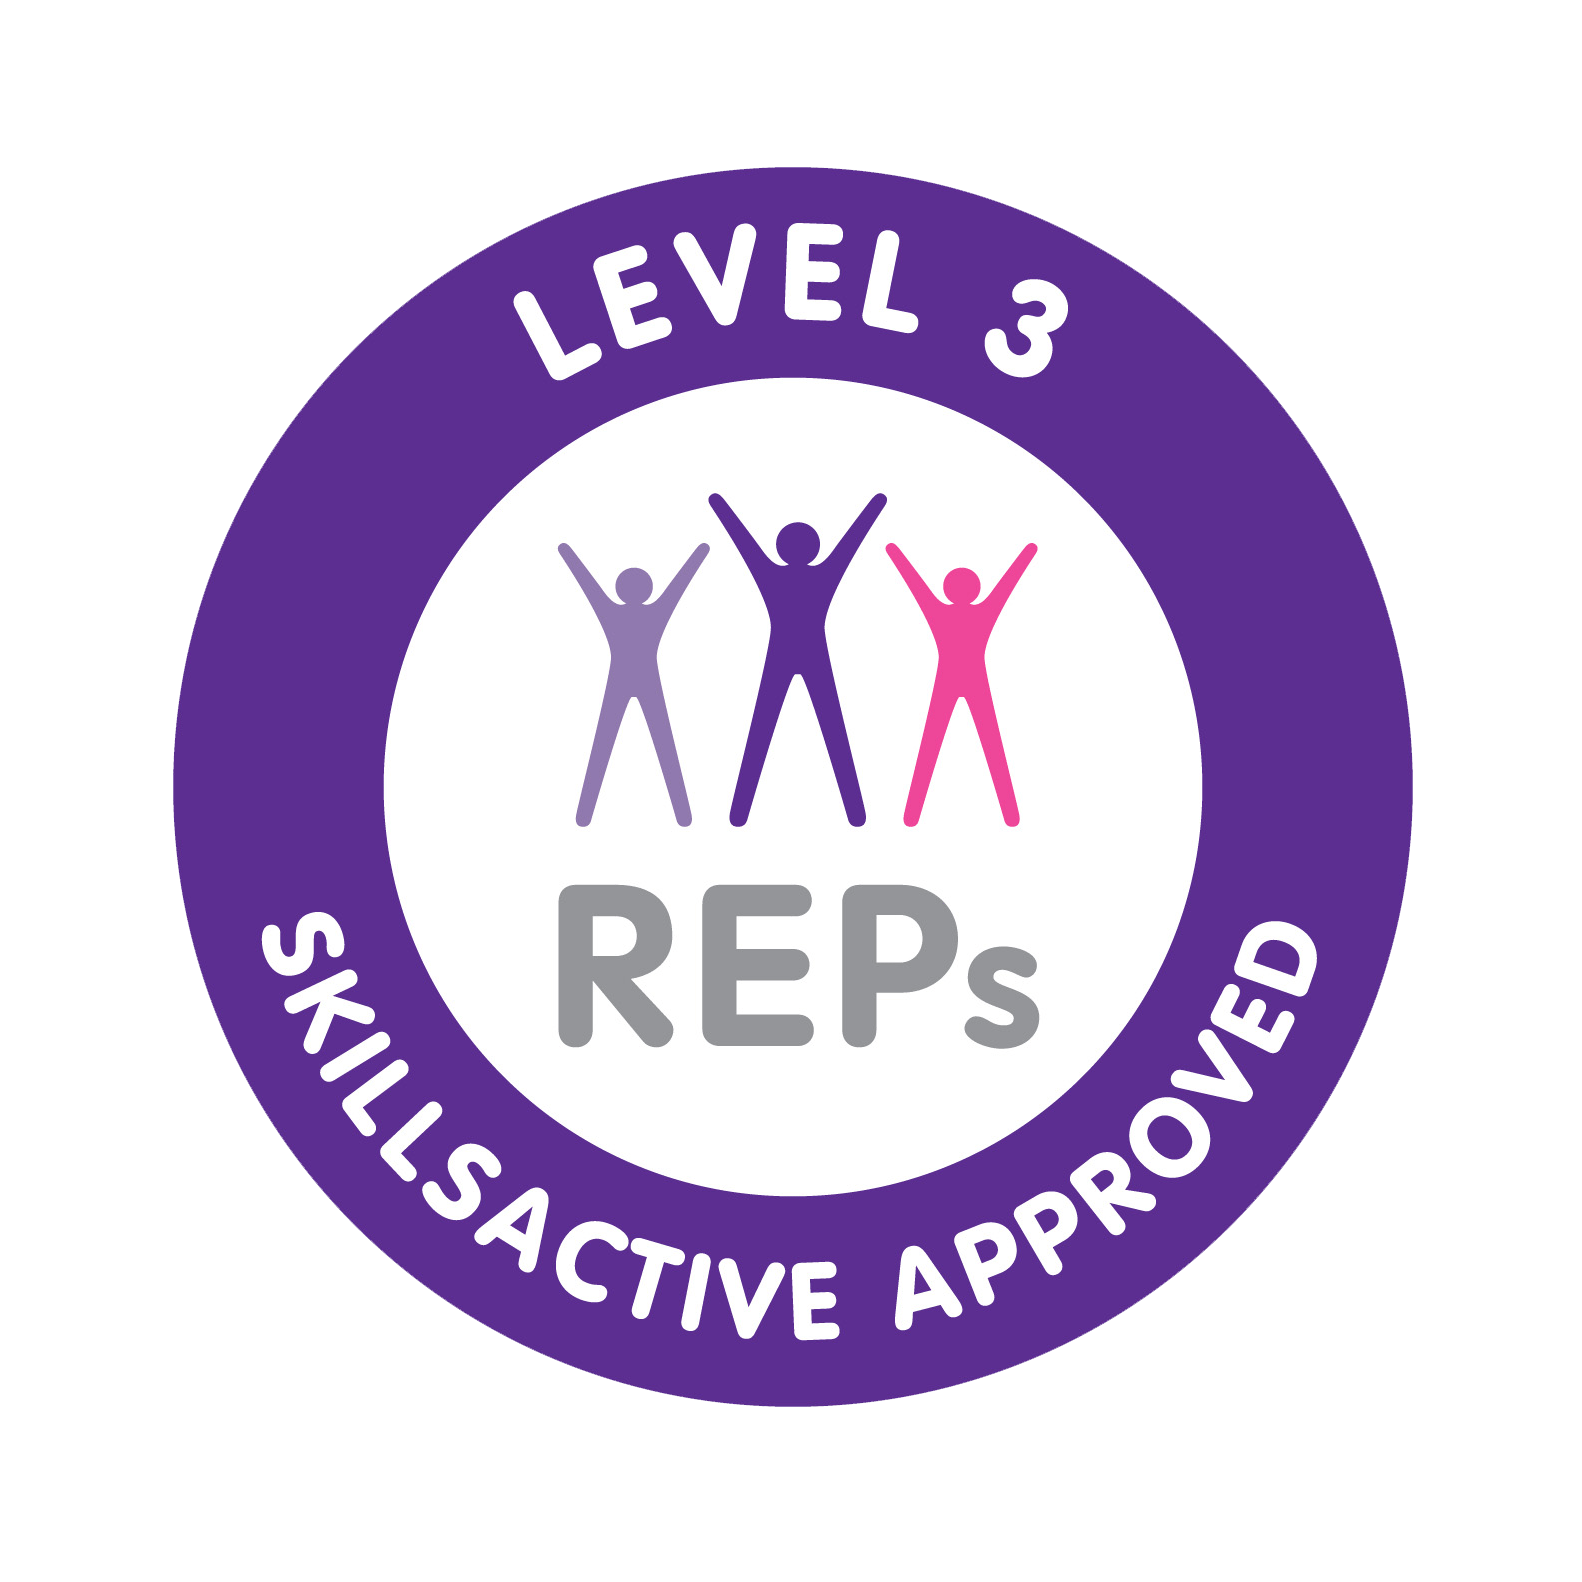 Level 3 personal trainer course hfe traditionally the level 3 certificate in personal training awards 20 reps points and helps you gain level 3 status with the register 1betcityfo Image collections